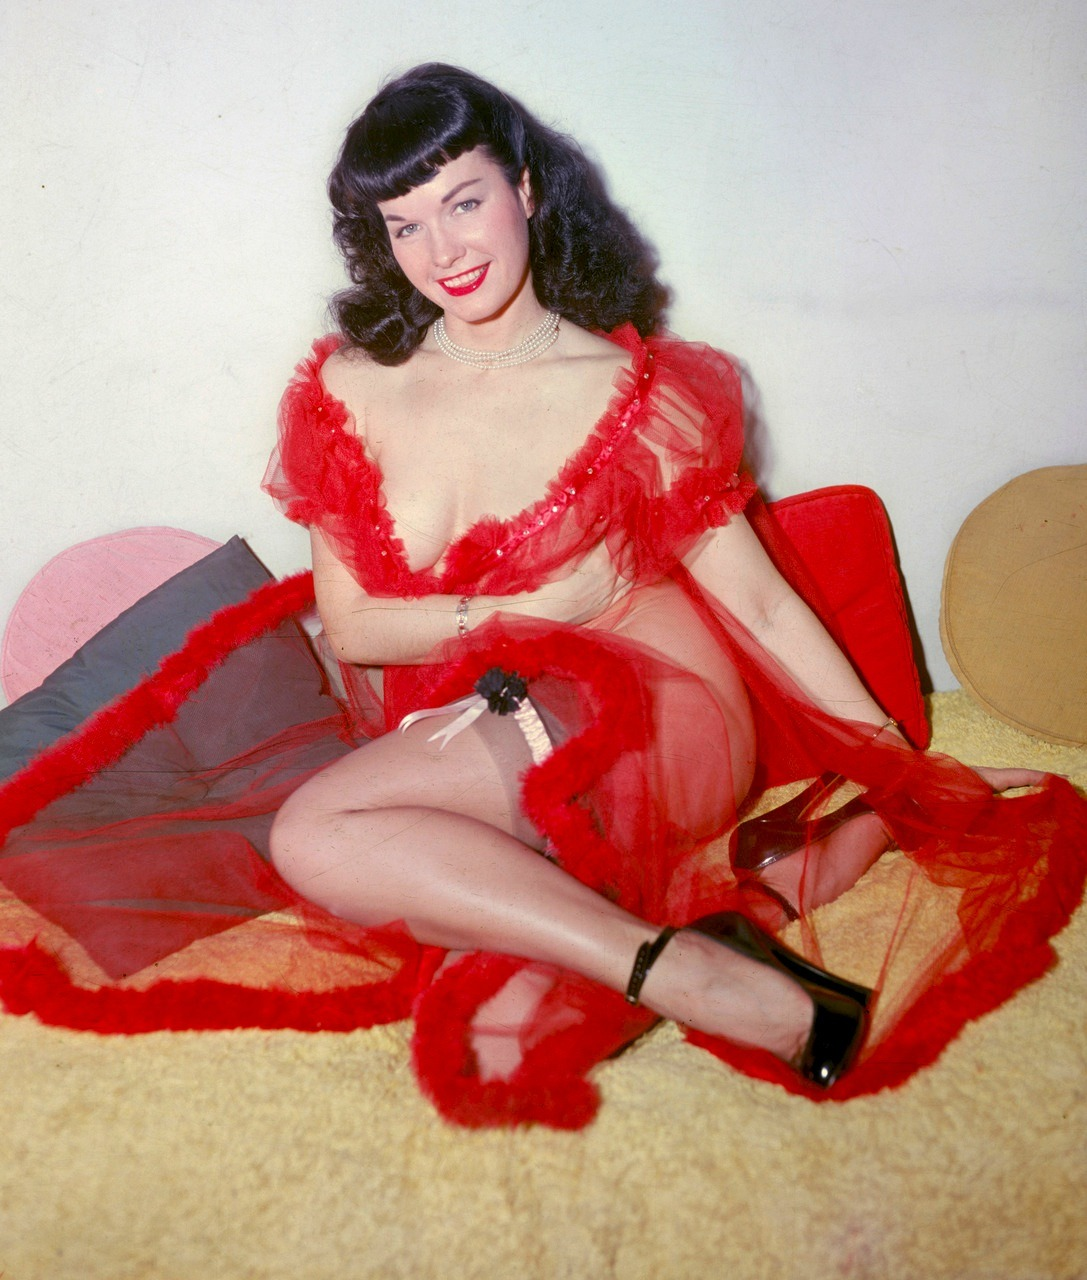 Bettie Page wants you to have a Happy Valentines Day!